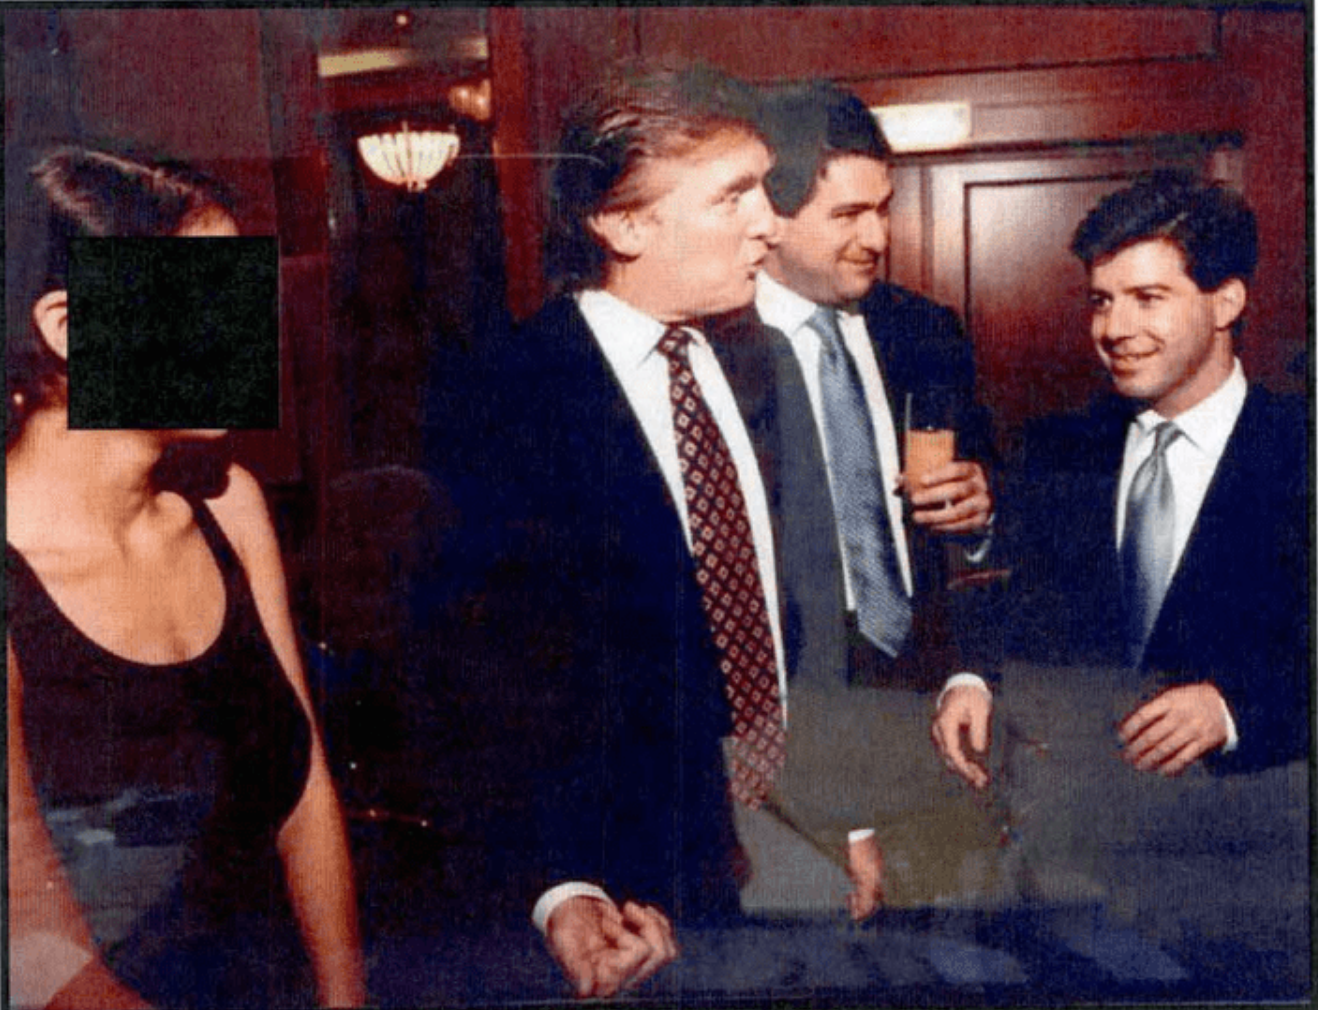 Apollo's Leon Black, Found in Serial Child Rapist Jeffrey Epstein's Black Book, Patronized Strip Club in Russia With Trump 1